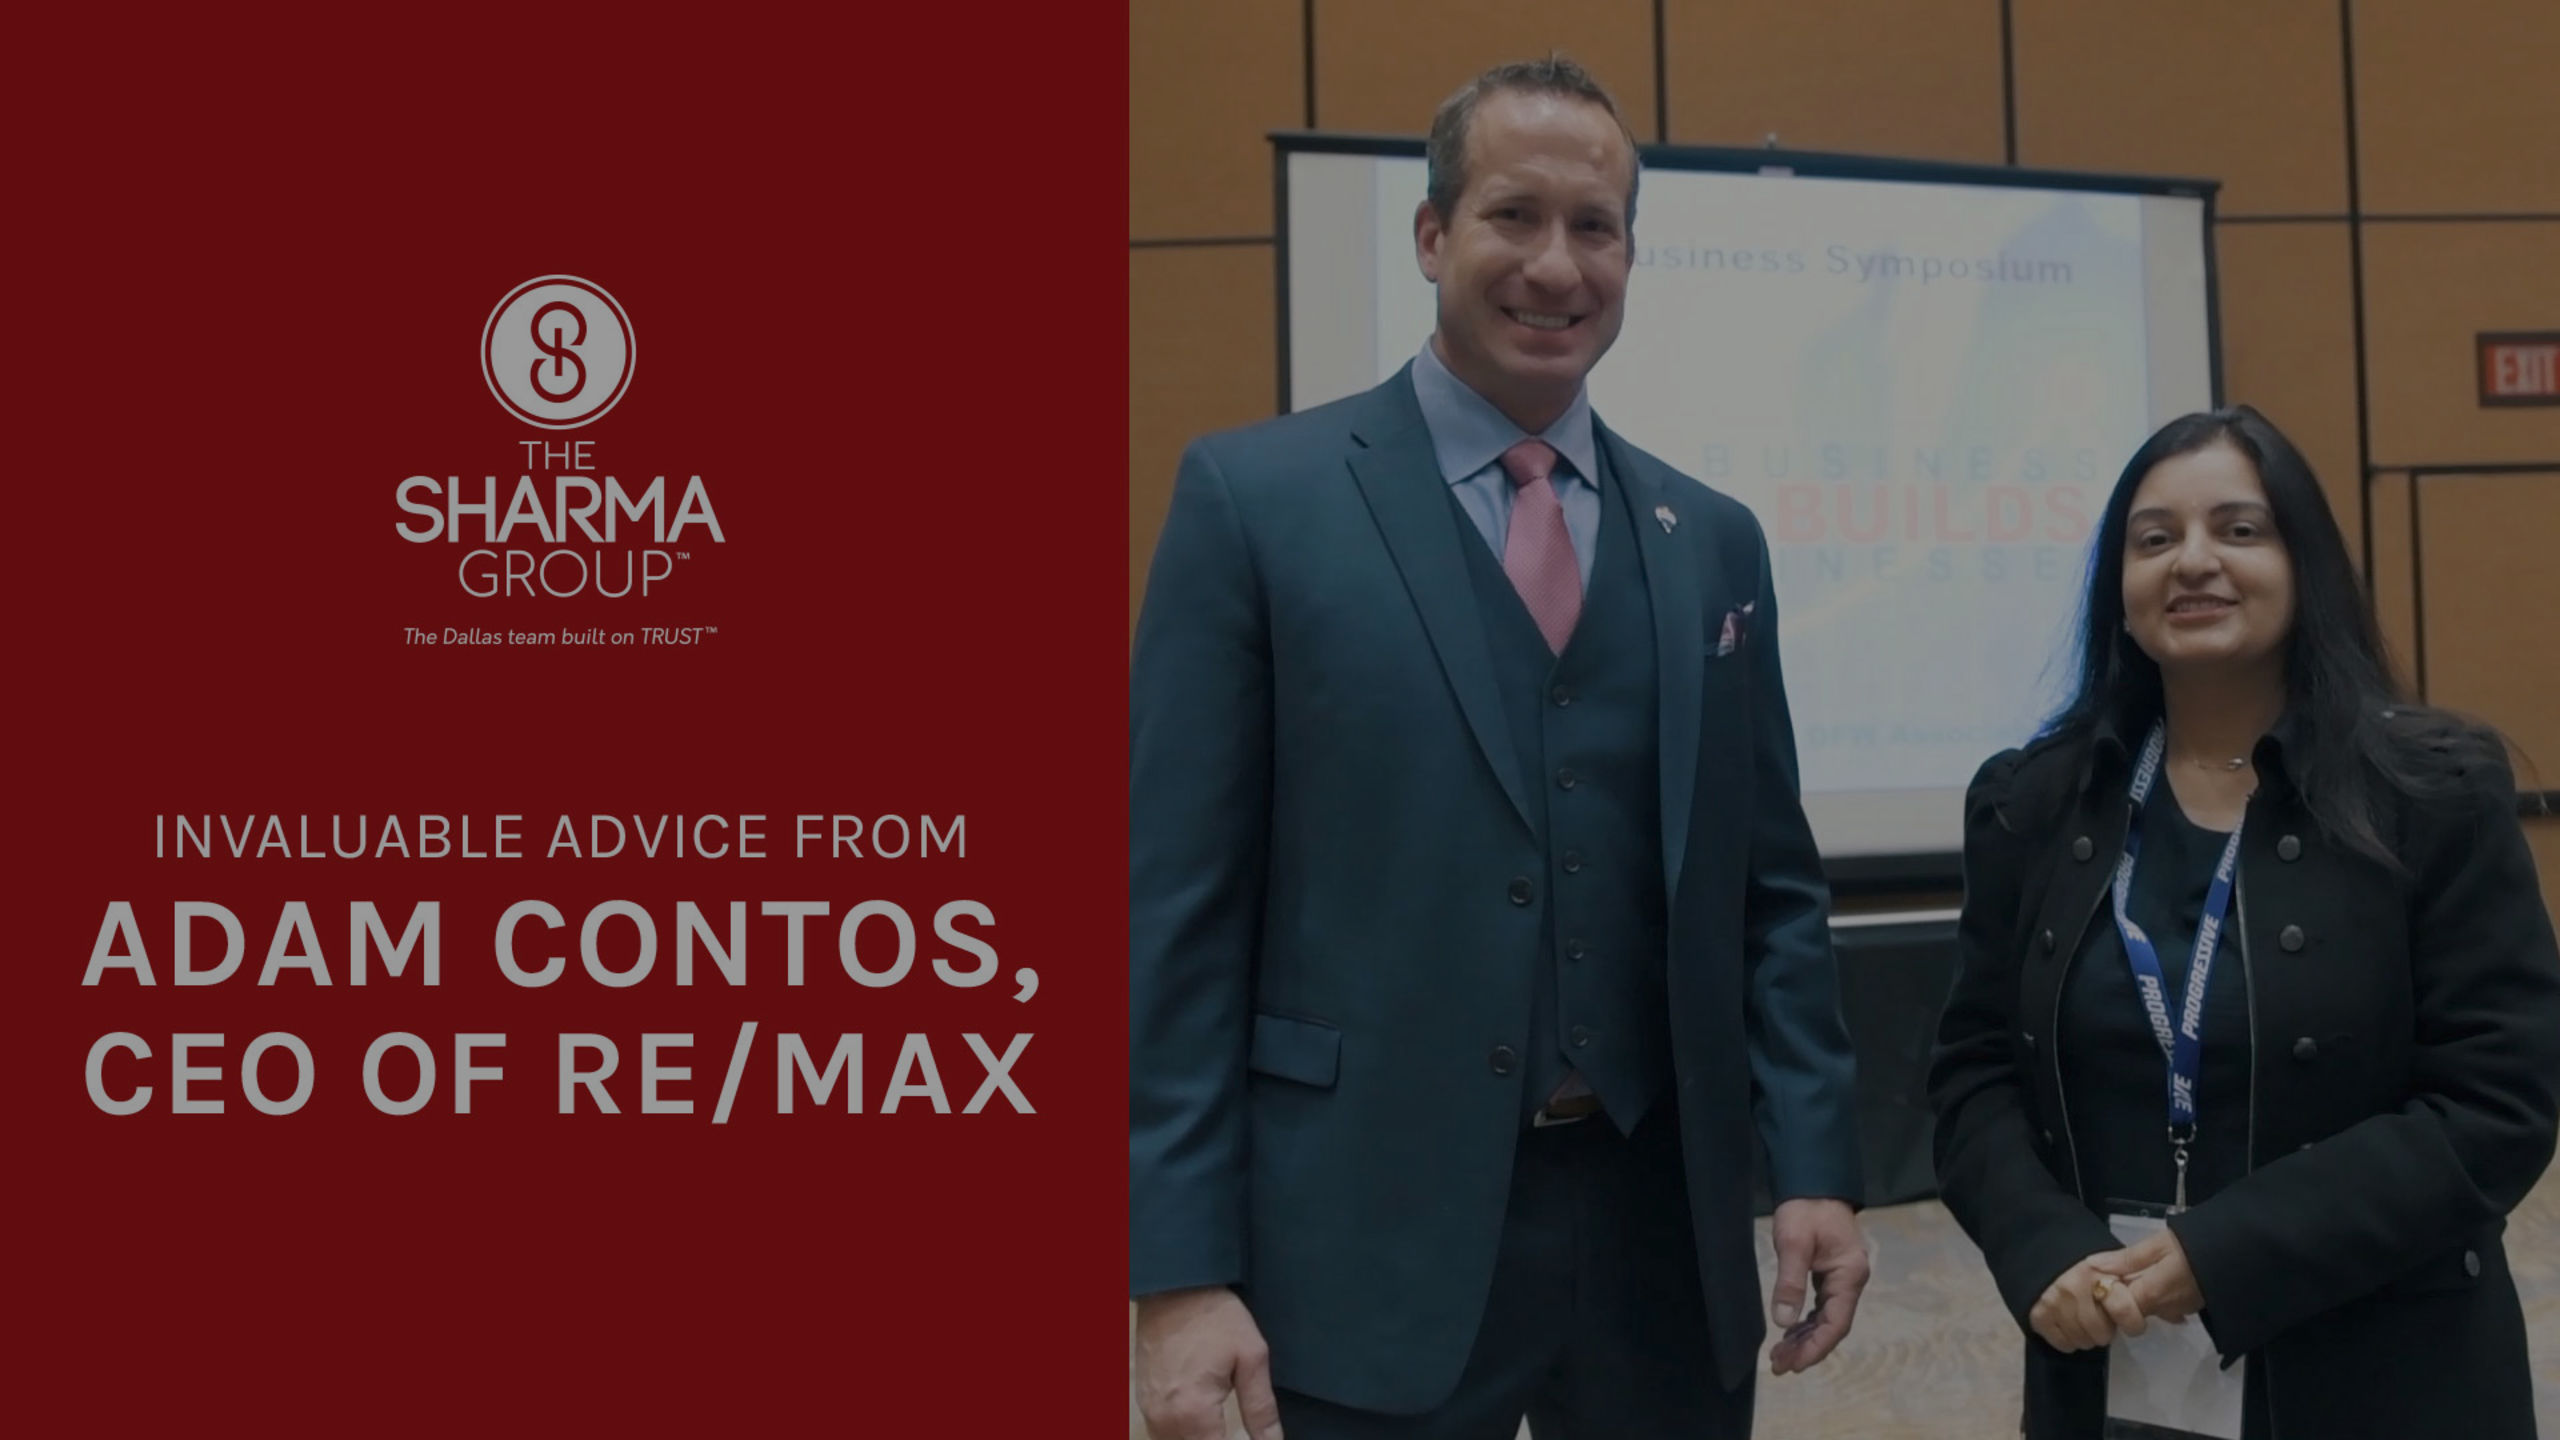 Advice from Adam Contos, CEO of RE/MAX